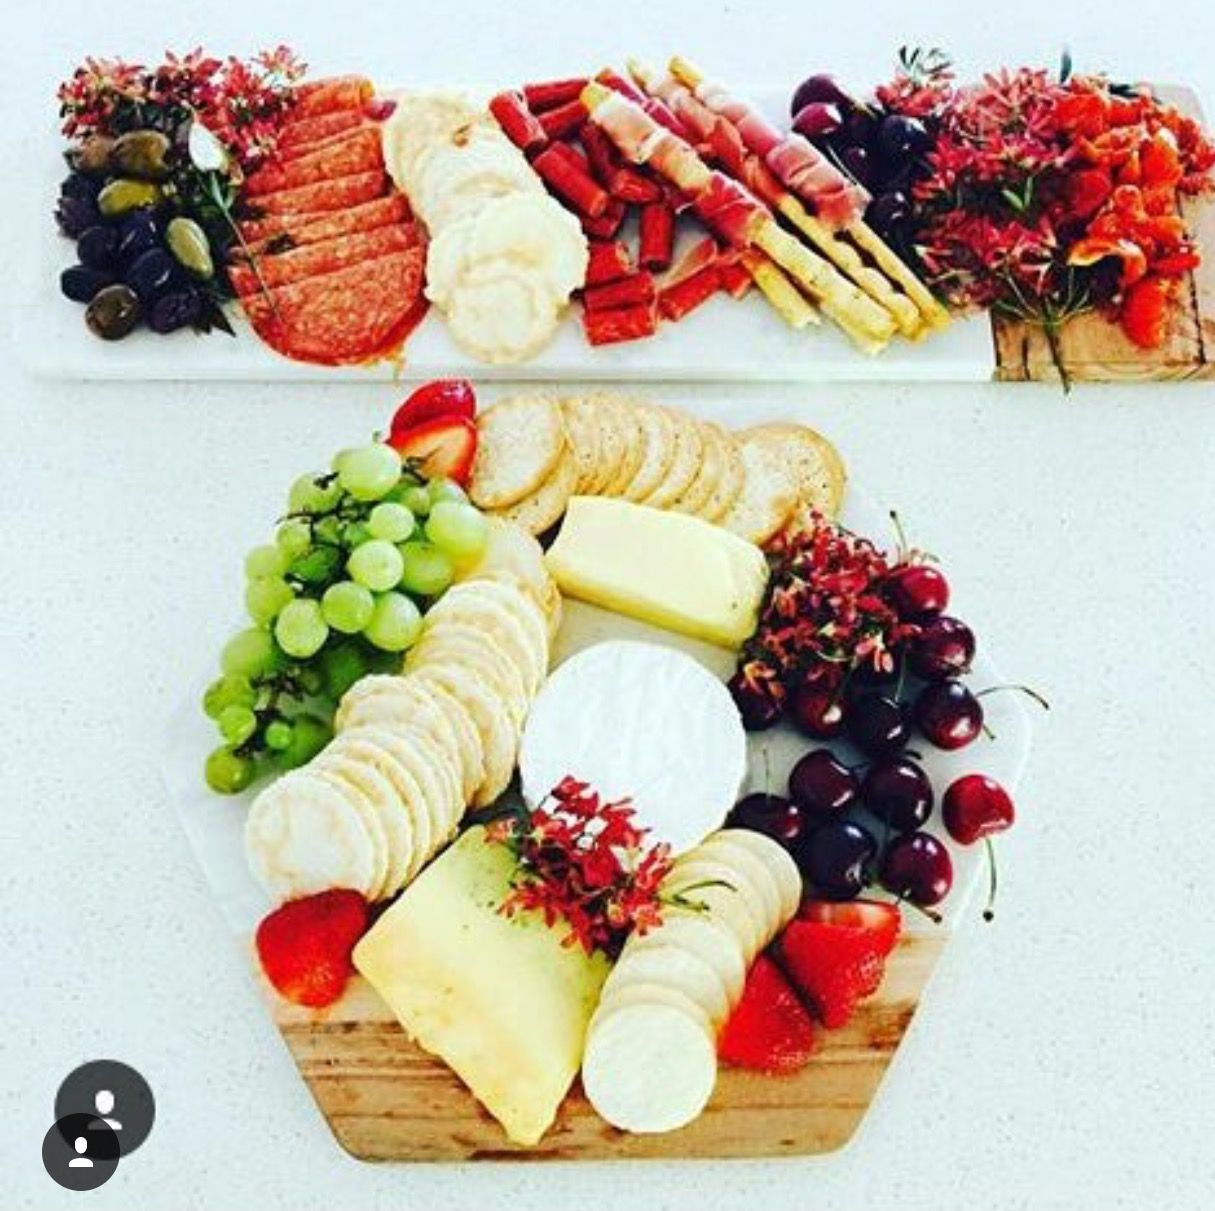 Kmart marble wood chopping boards Platters, Wood